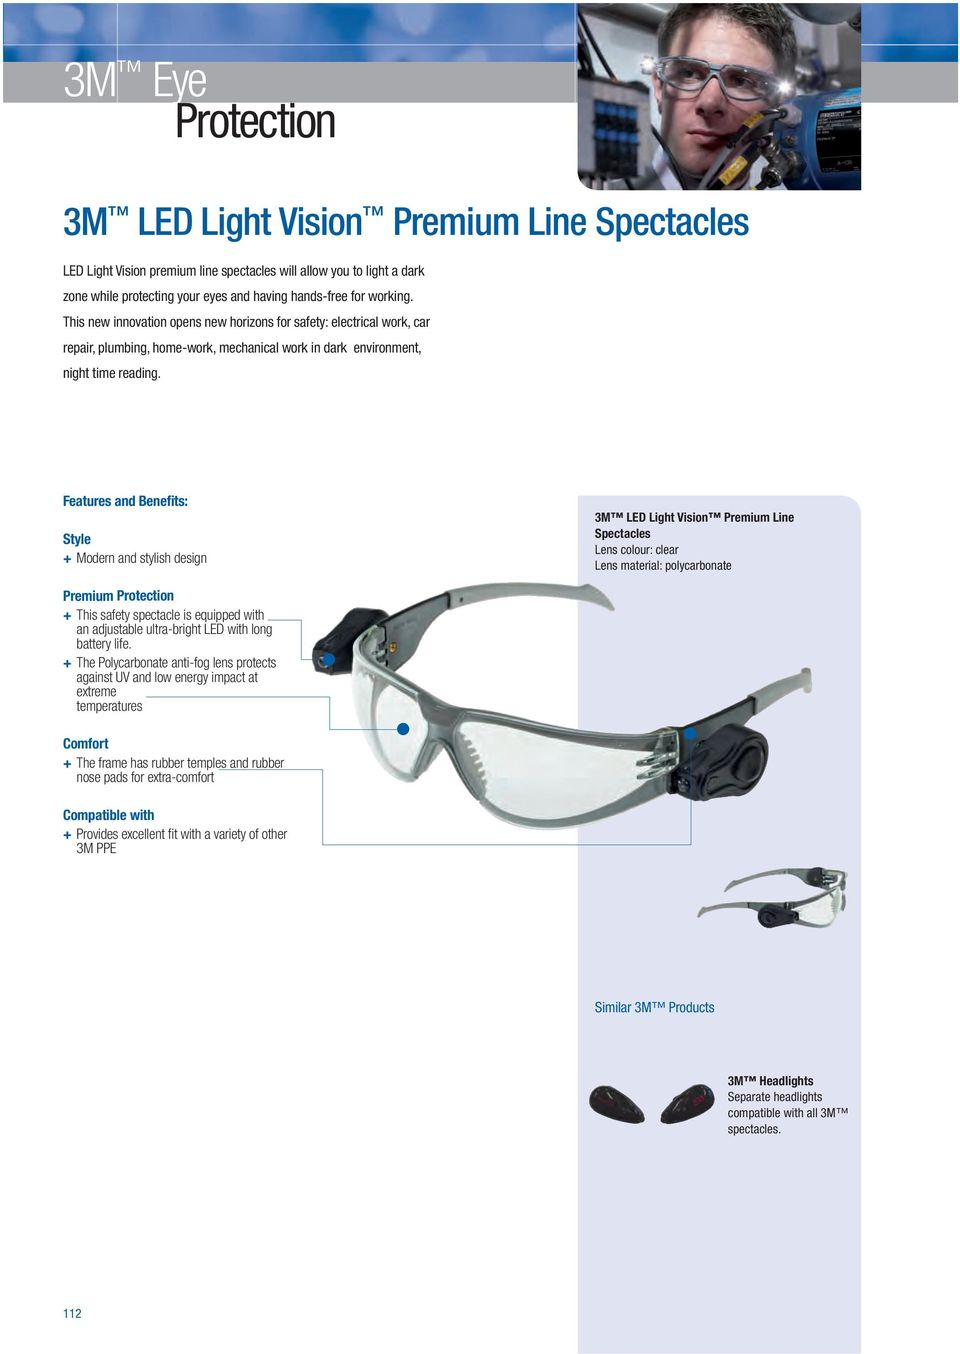 + Modern and stylish design 3M LED Light Vision Premium Line Spectacles + This safety spectacle is equipped with an adjustable ultra-bright LED with long battery life.